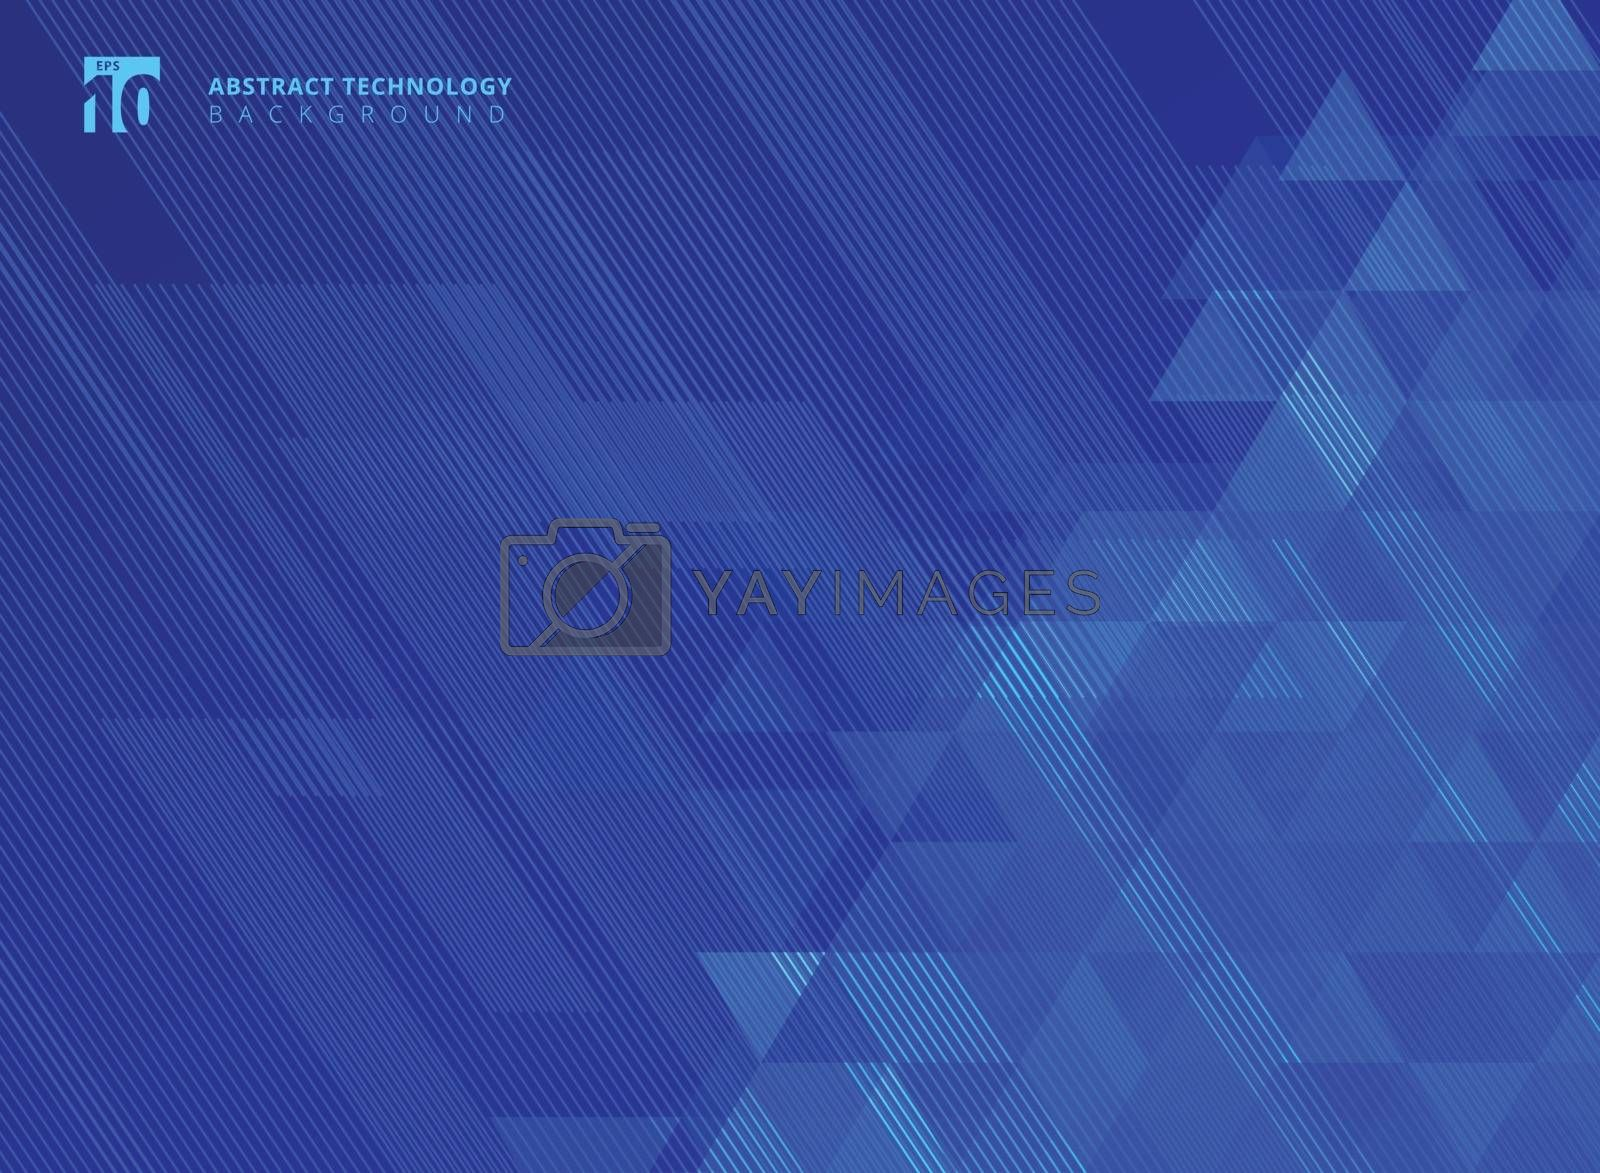 Abstract lines and triangles pattern technology on blue gradients background. Vector illustration